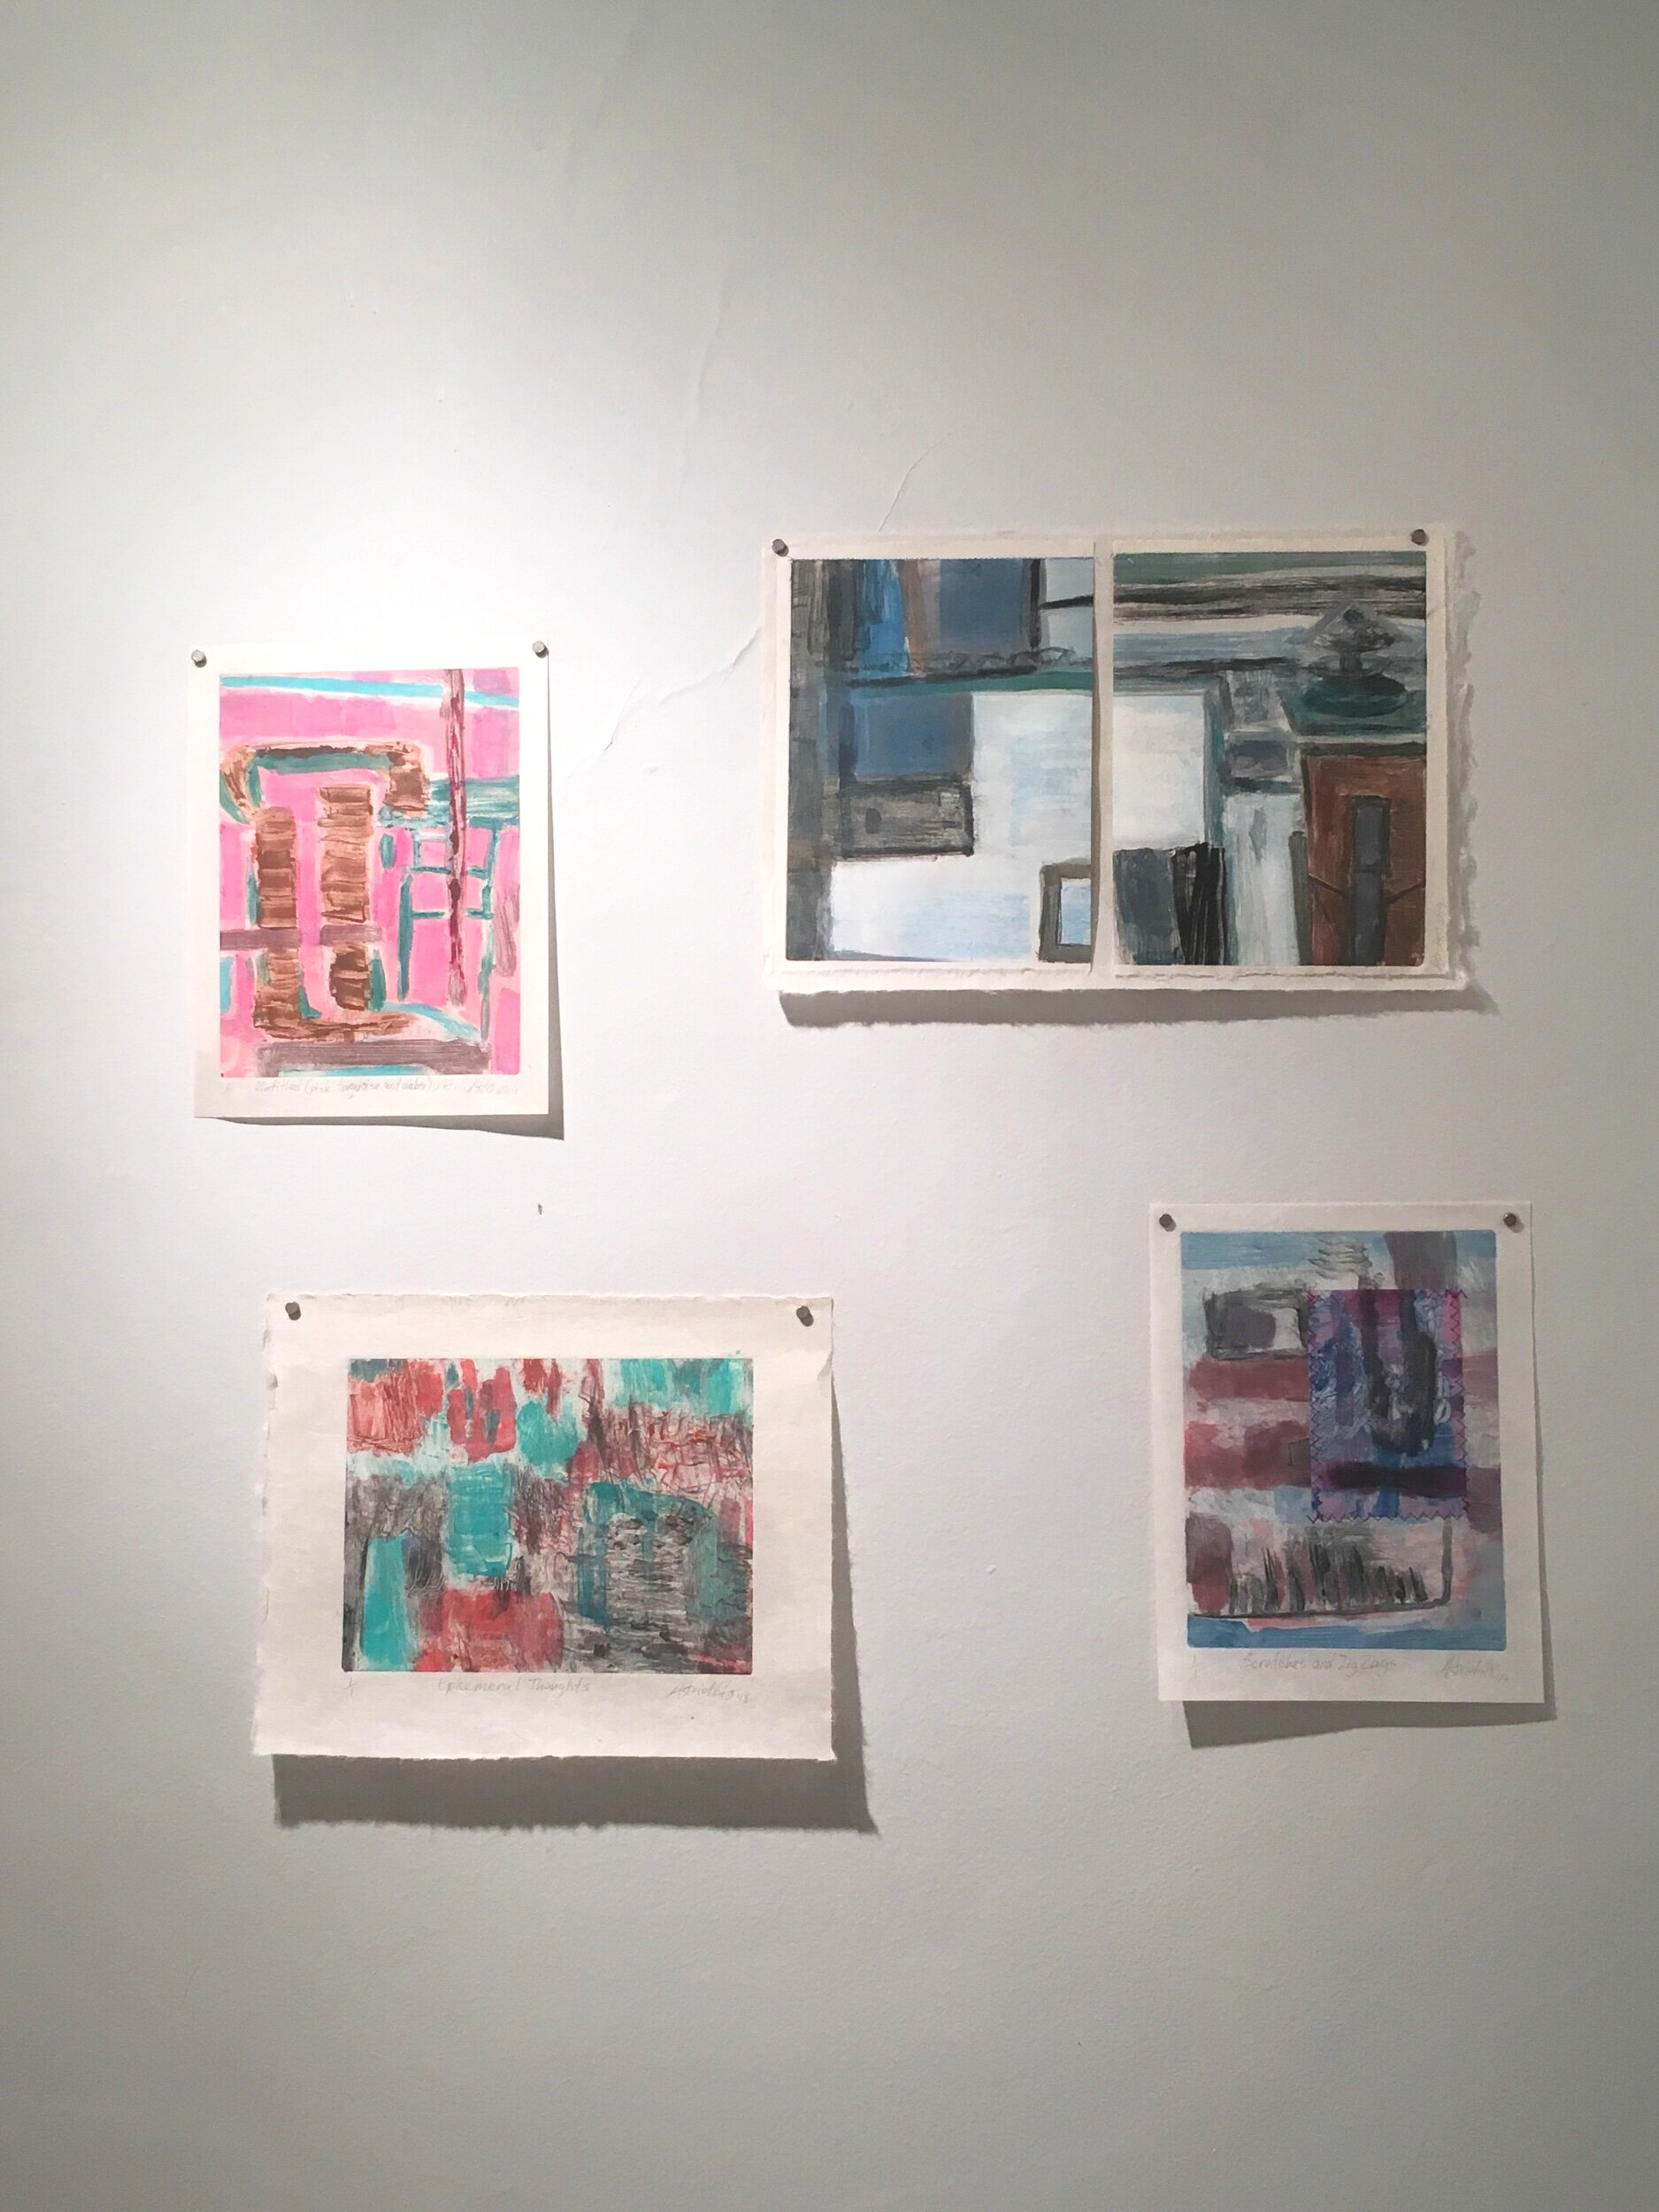 My four prints in the exhibition.